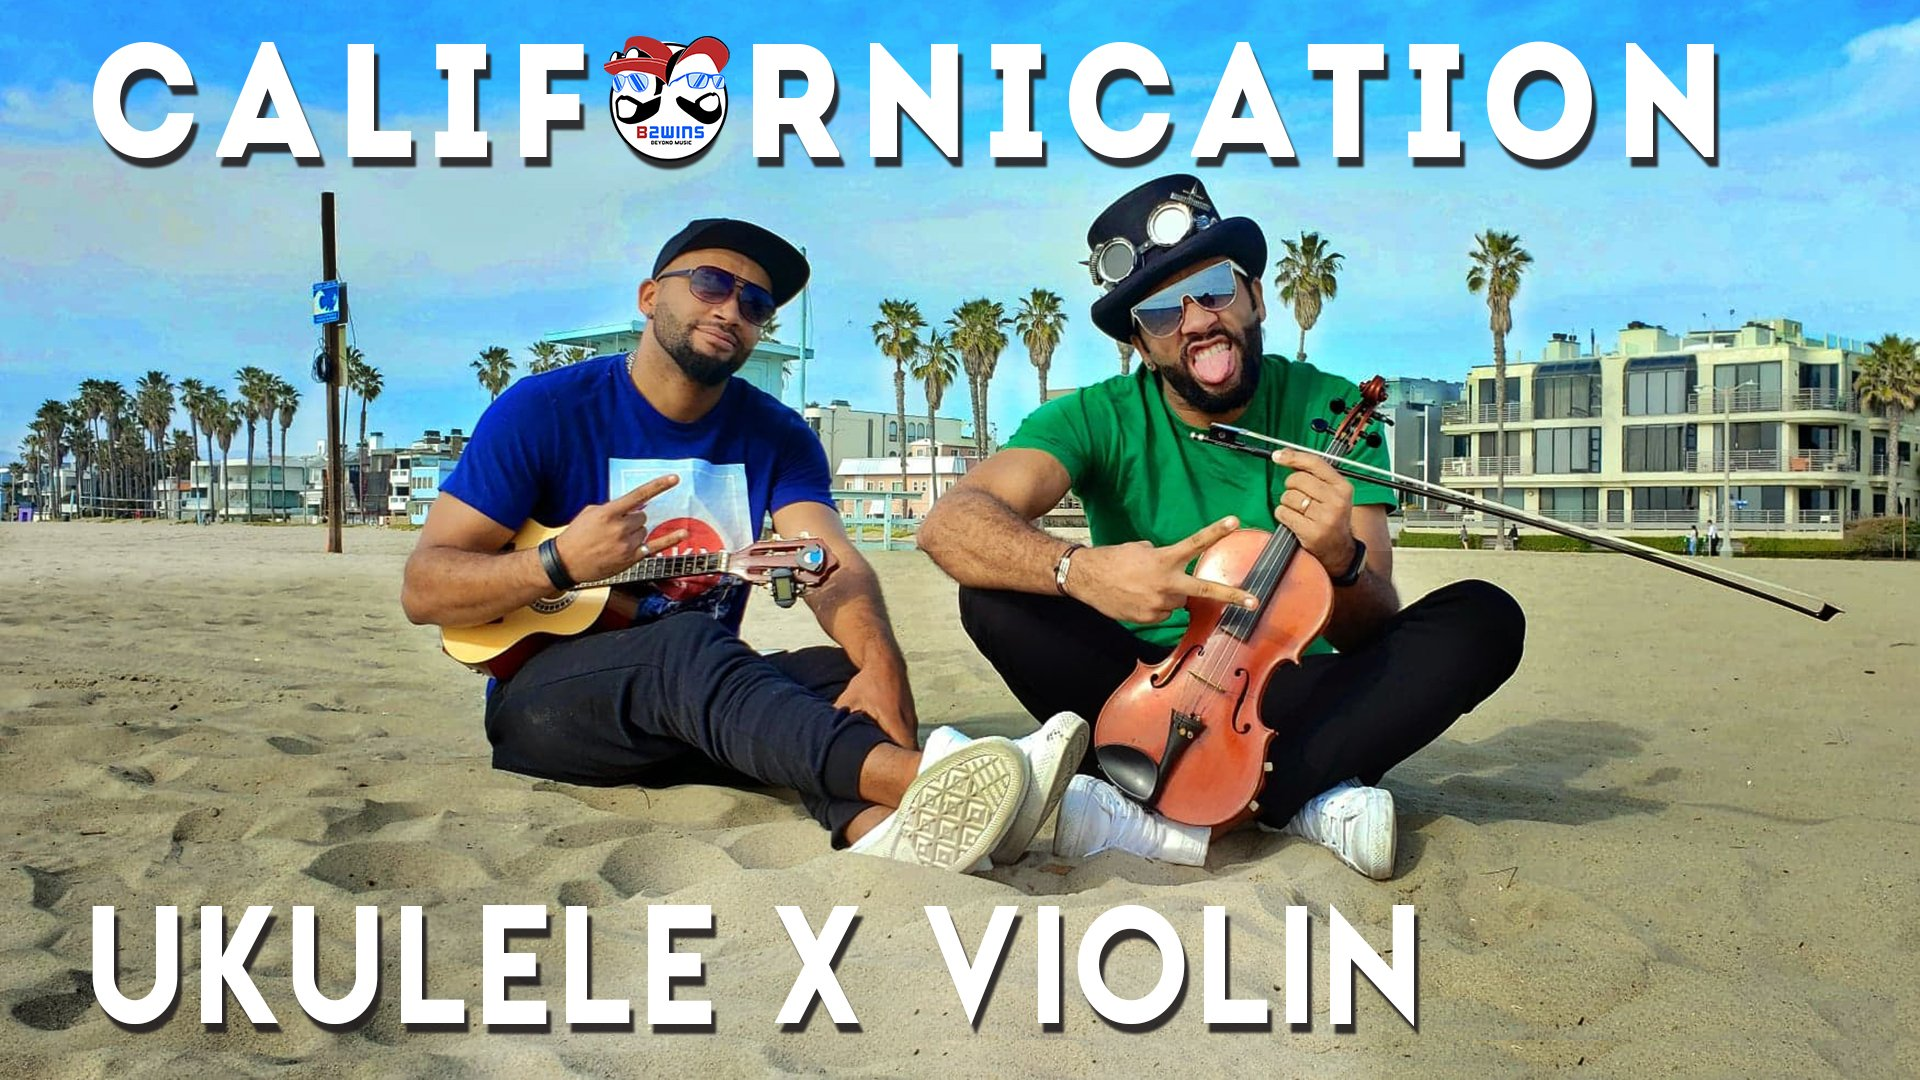 Californication Violin Ukulele Acoustic Cover